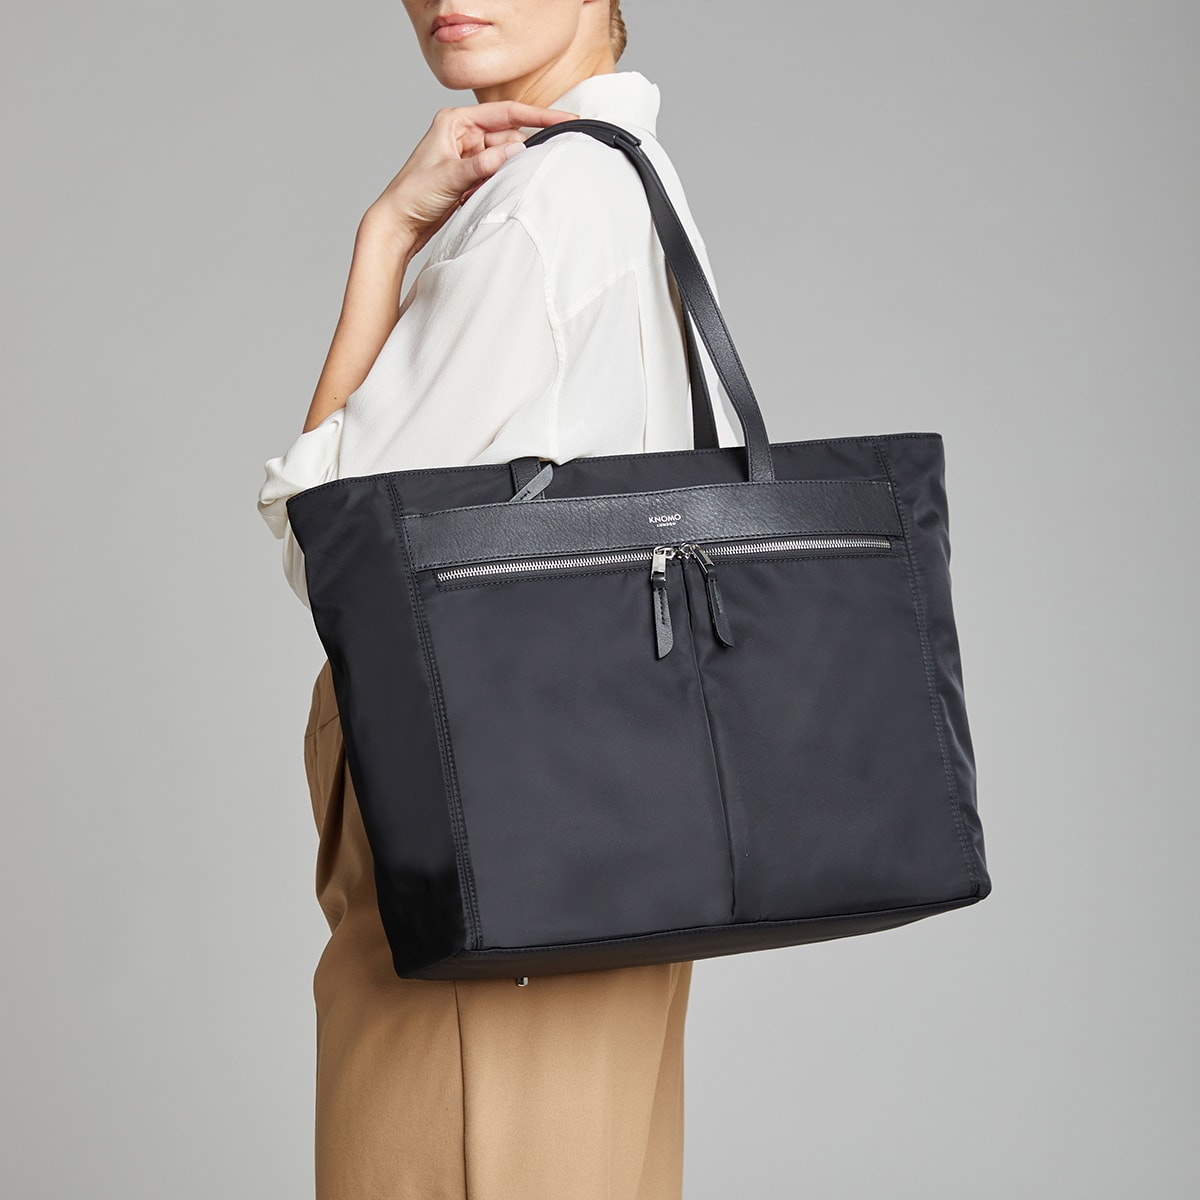 "Grosvenor Place Laptop Tote Bag - 15"" -  Black 